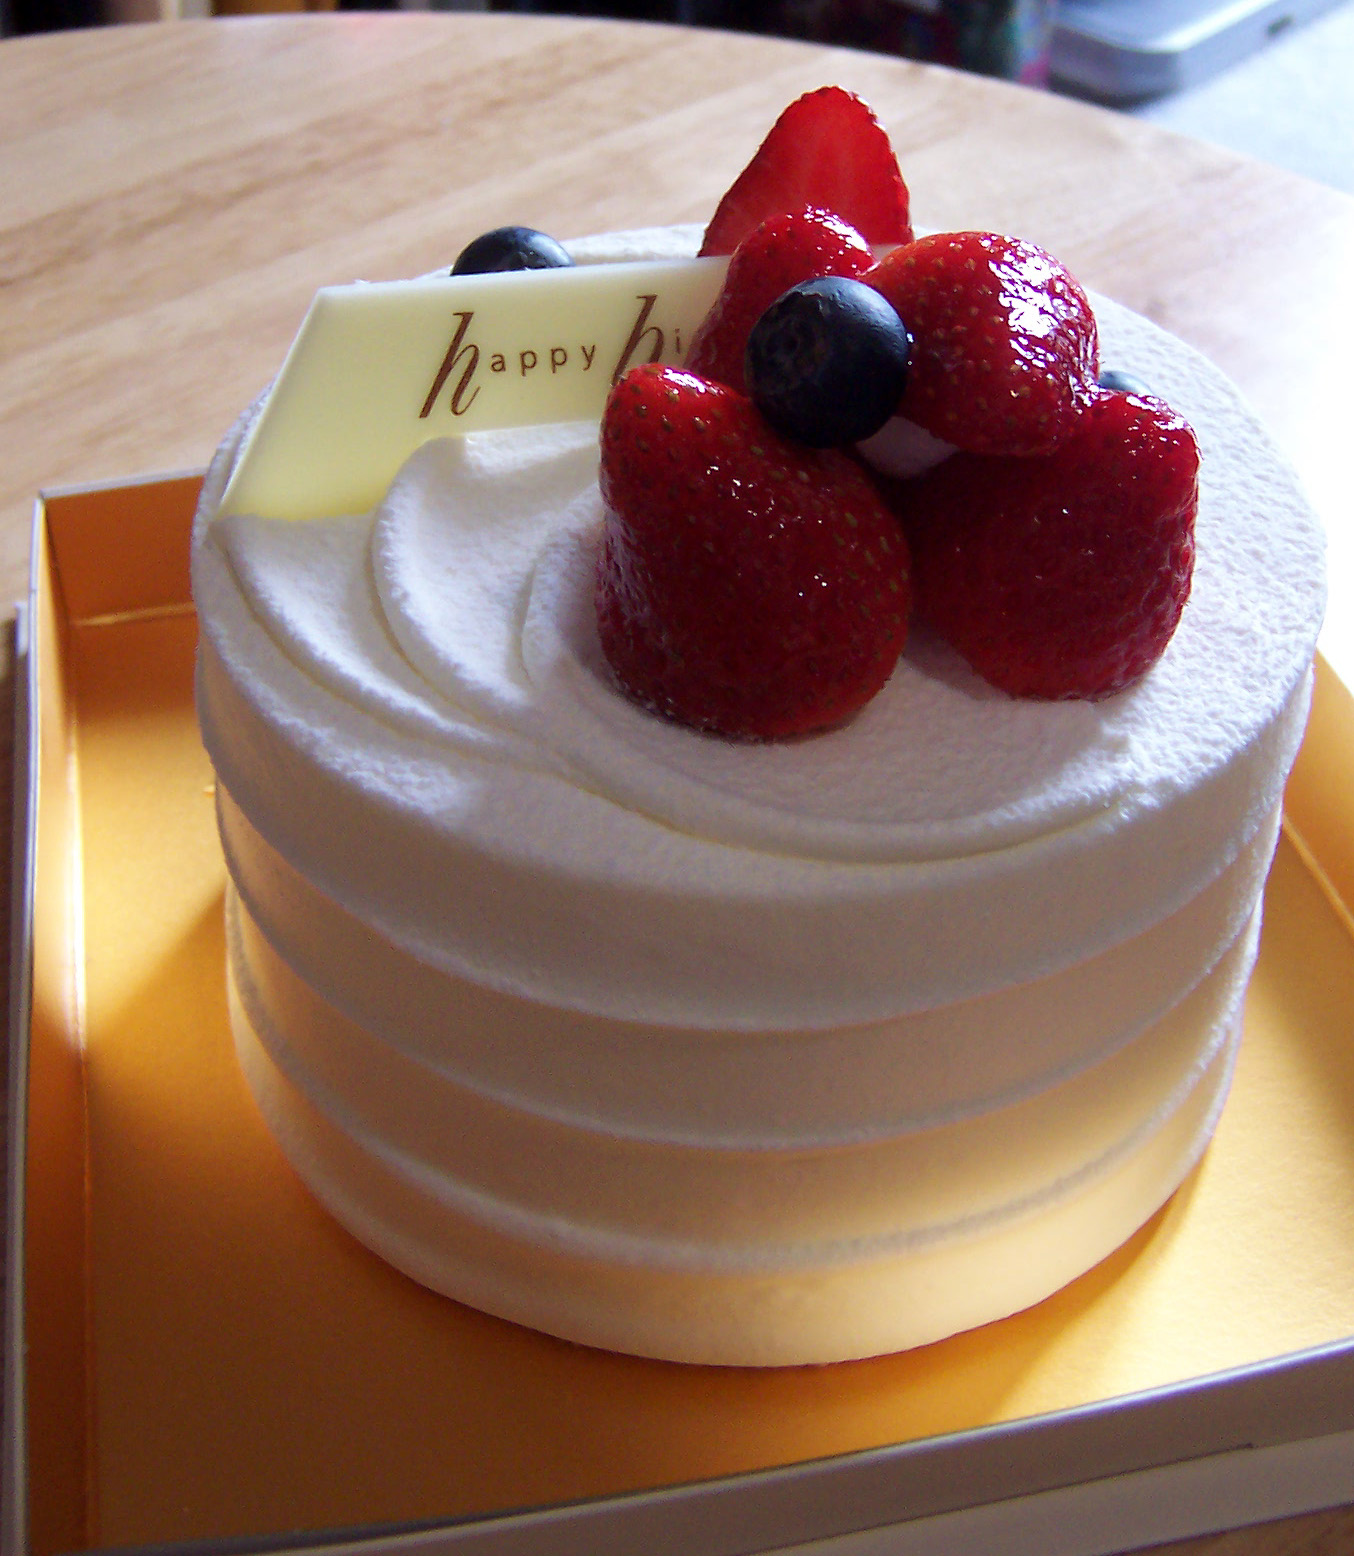 File:Birthday Cake 01.jpg